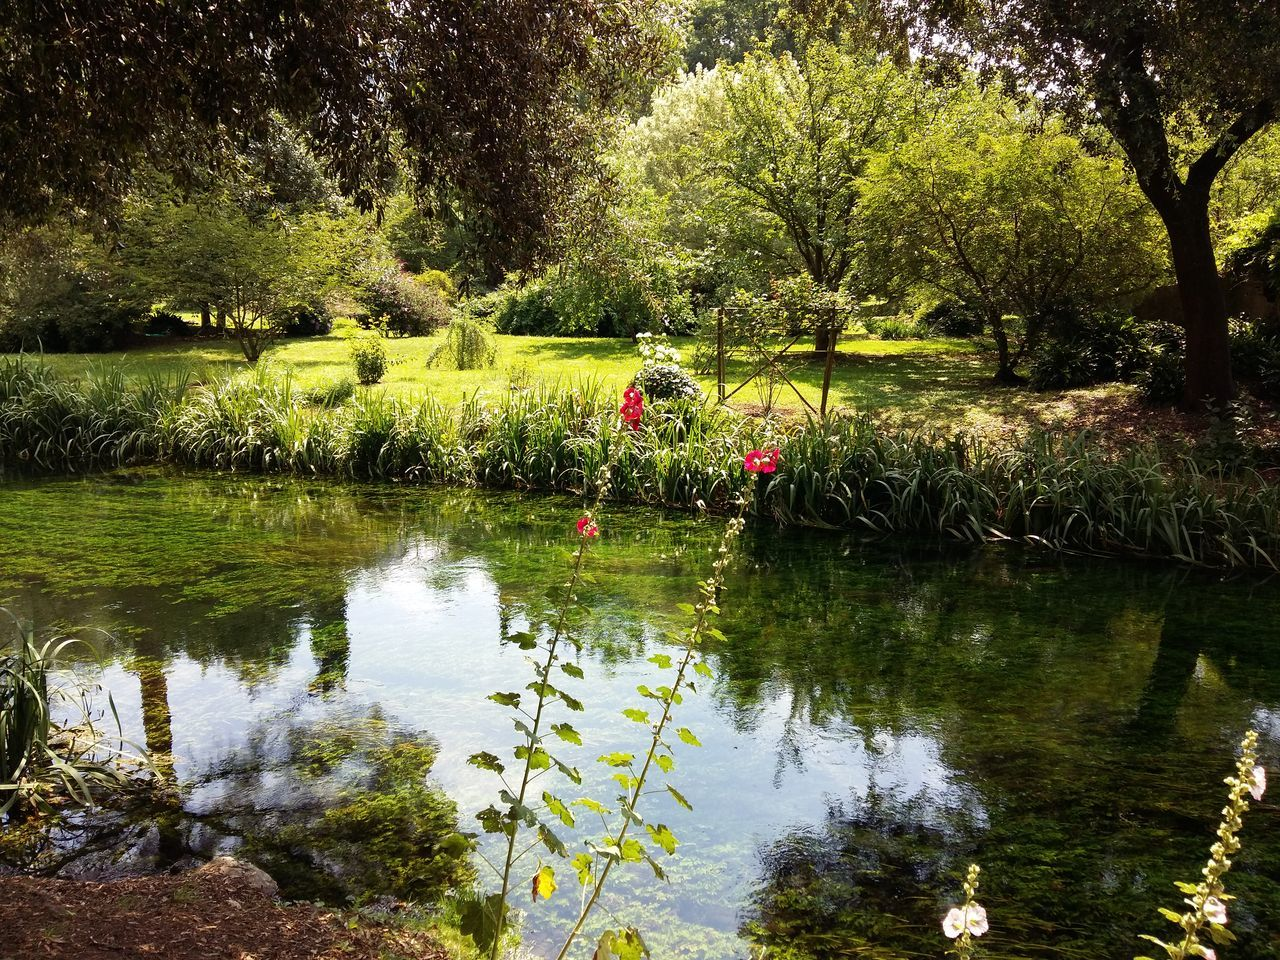 Giardino Di Ninfa Norma Italy Lazio Lazio,Italy Garden Photography Garden Flowers Feel The Journey Flower River